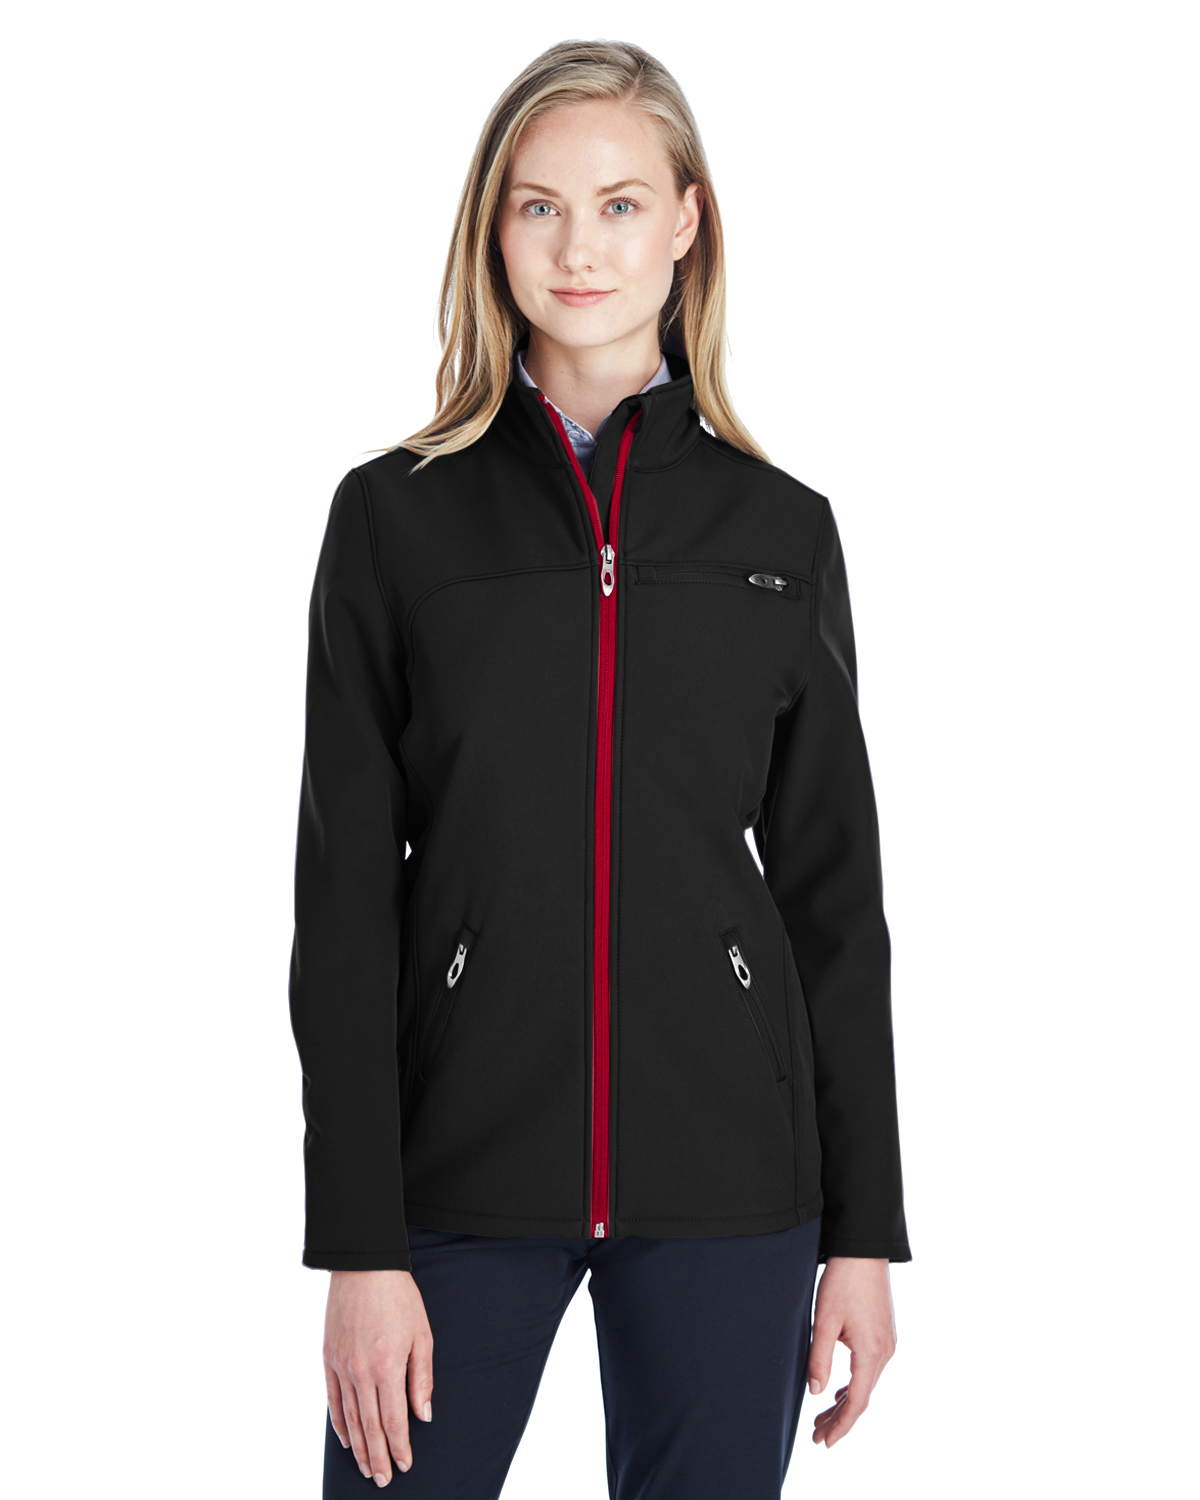 Spyder 187337 - Ladies' Transport Softshell Jacket